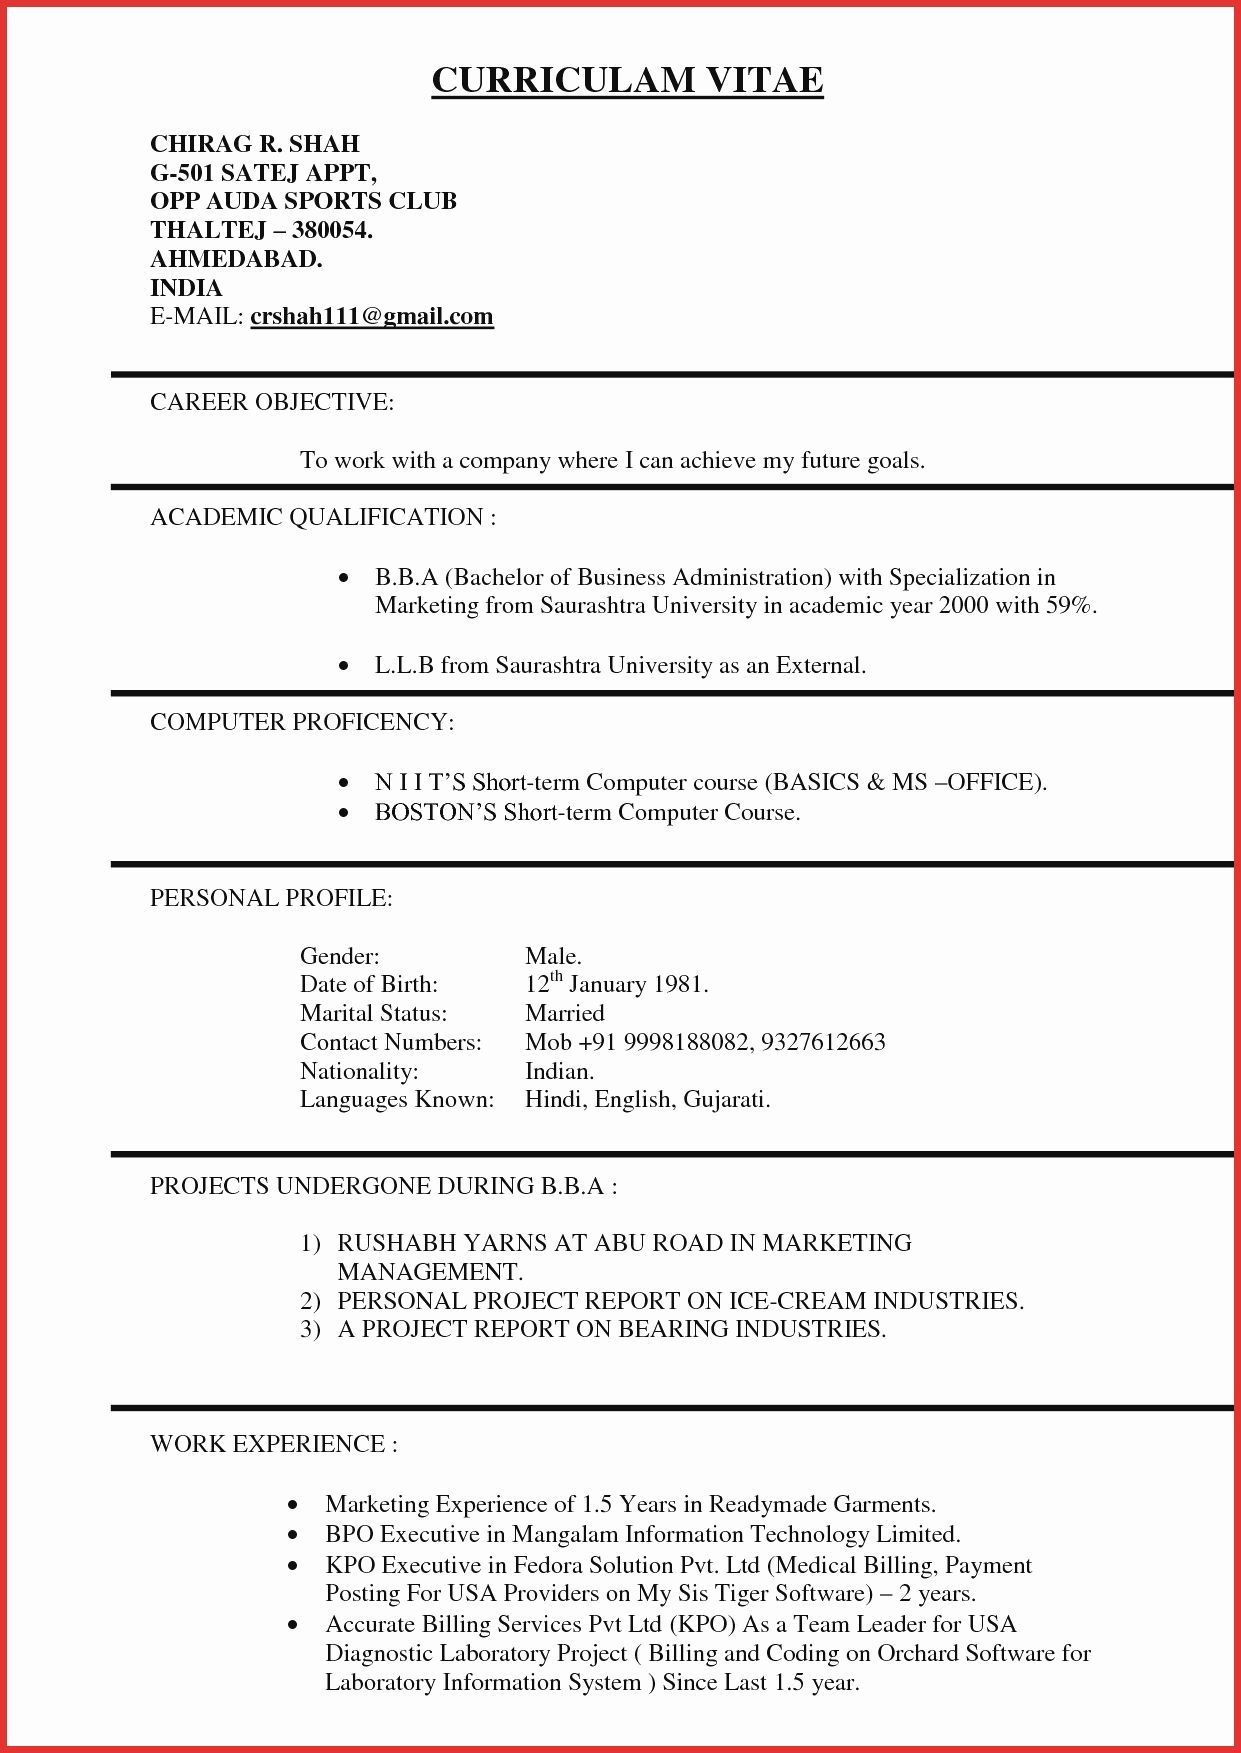 Procurement manager CV template Manager resume, Resume